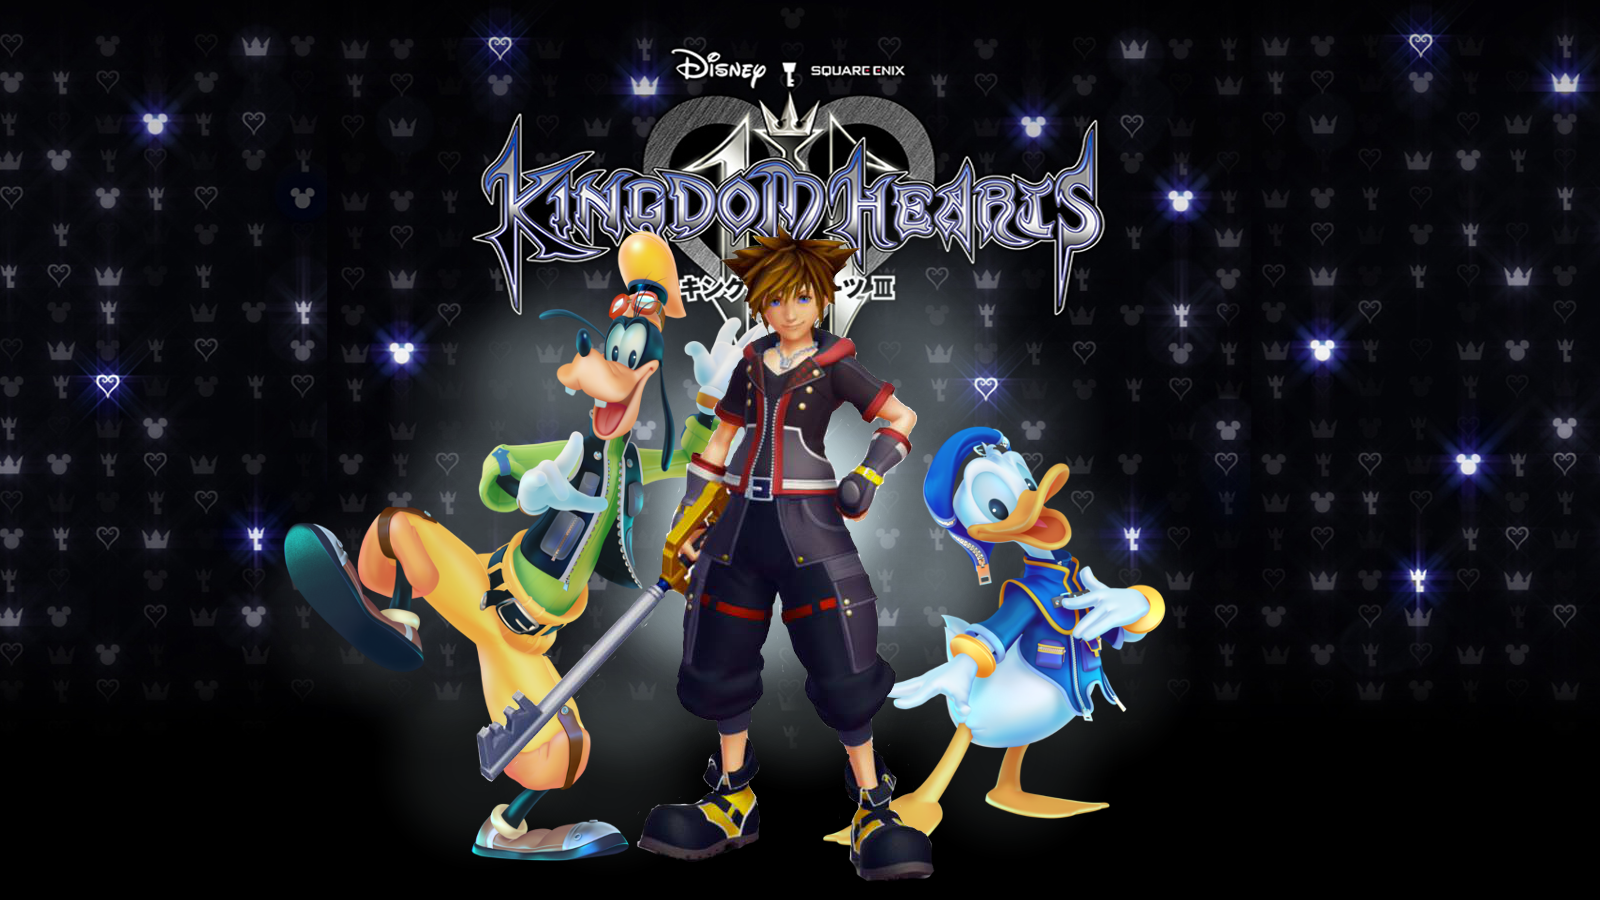 Kingdom Hearts Iii Wallpaper Wallpapers Kh13 For Kingdom Hearts